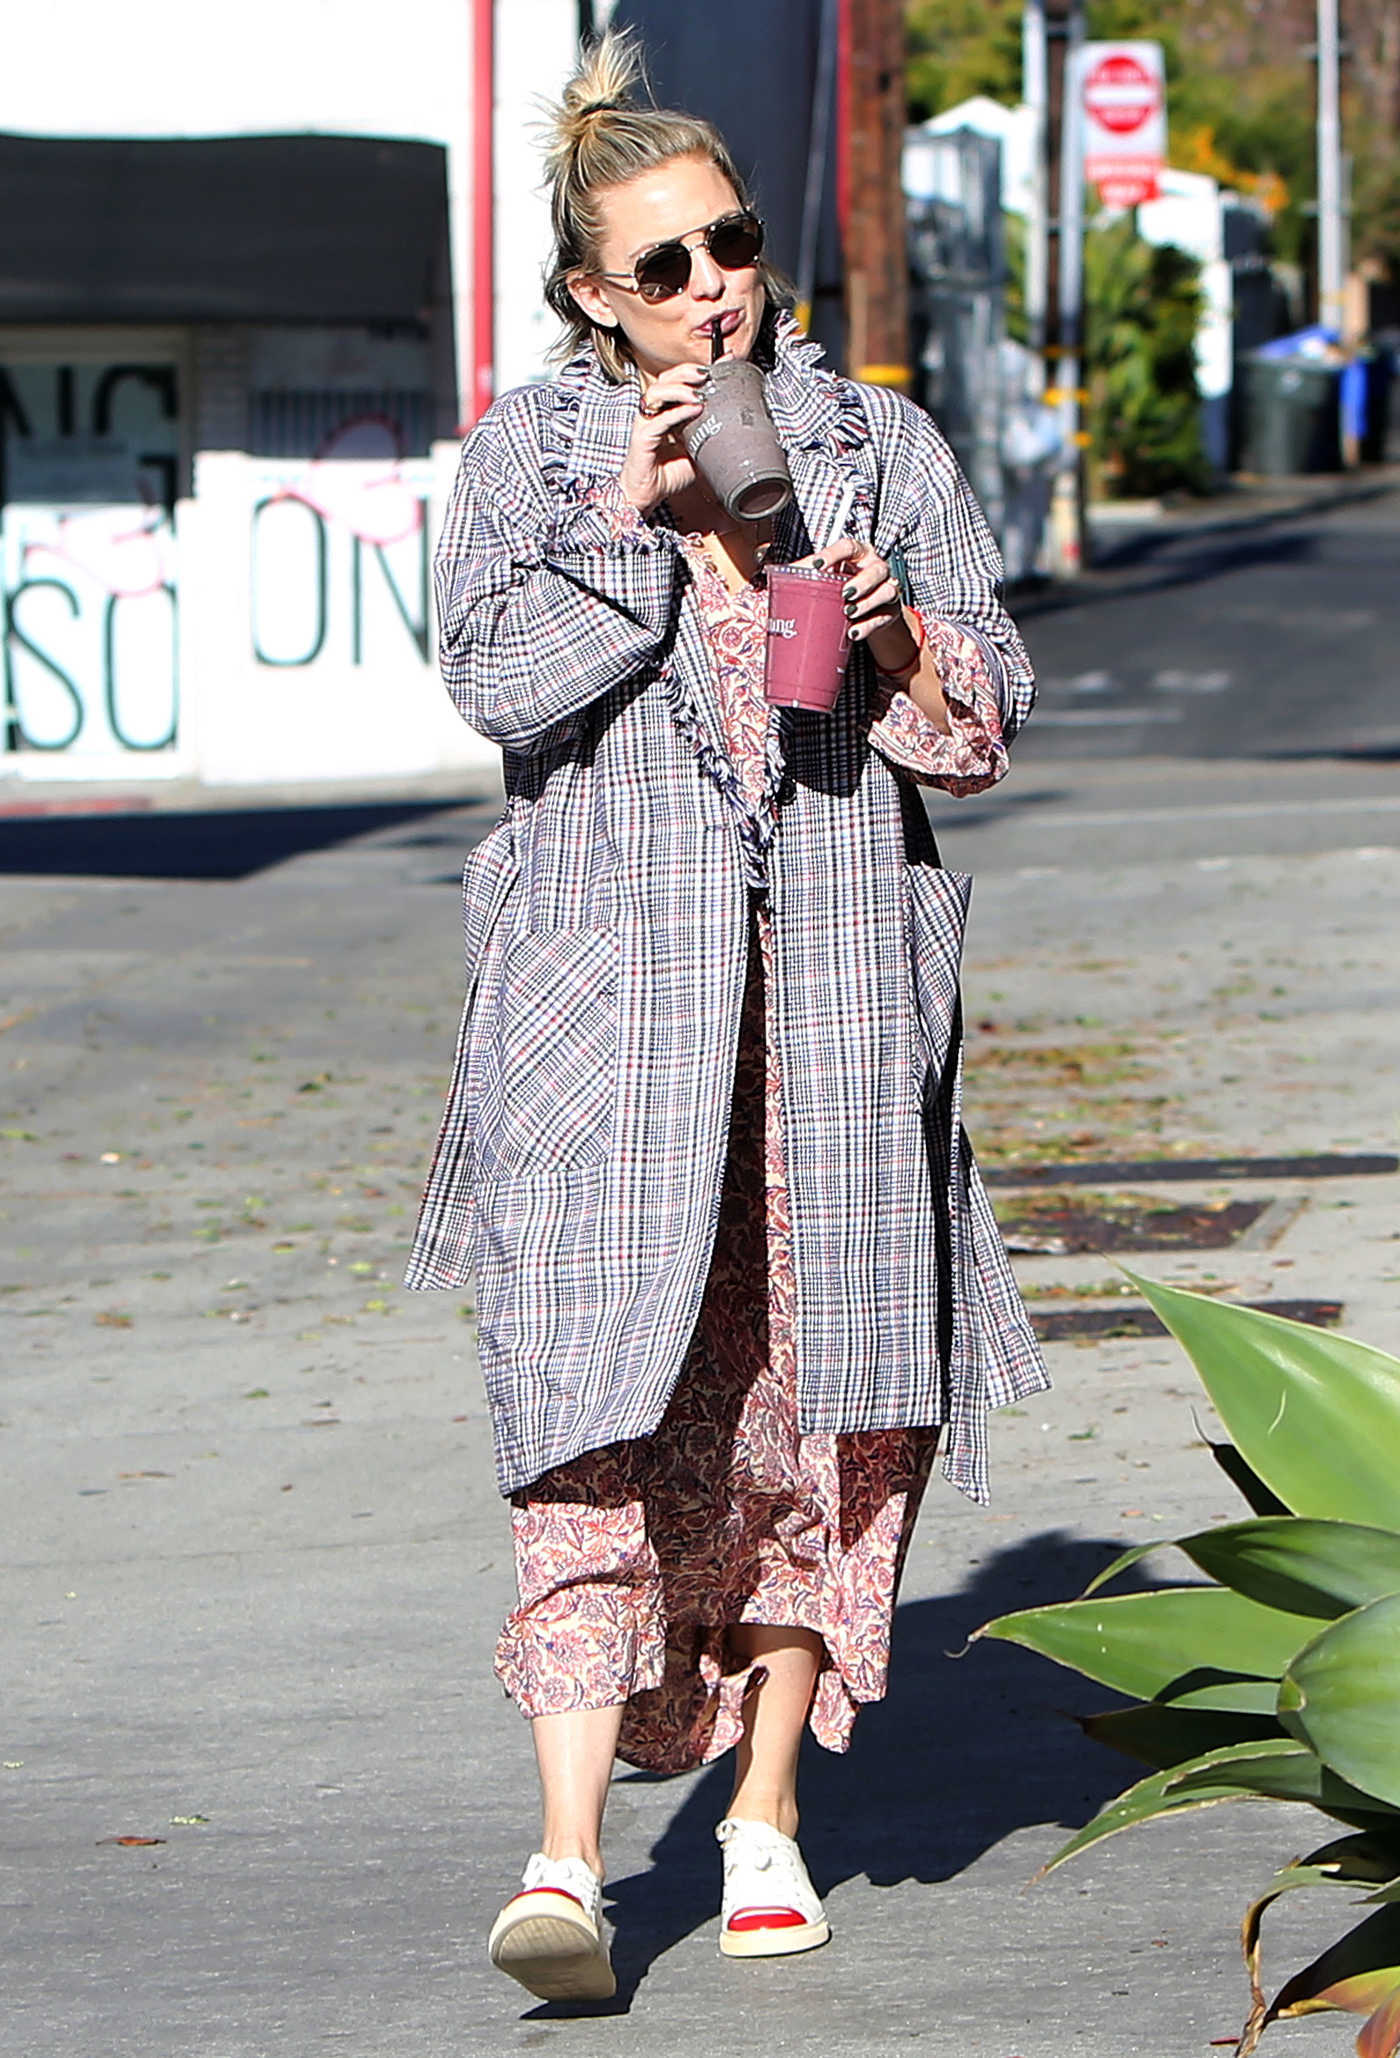 Kate Hudson in a Plaid Coat Was Seen Out in Los Angeles 01/22/2019